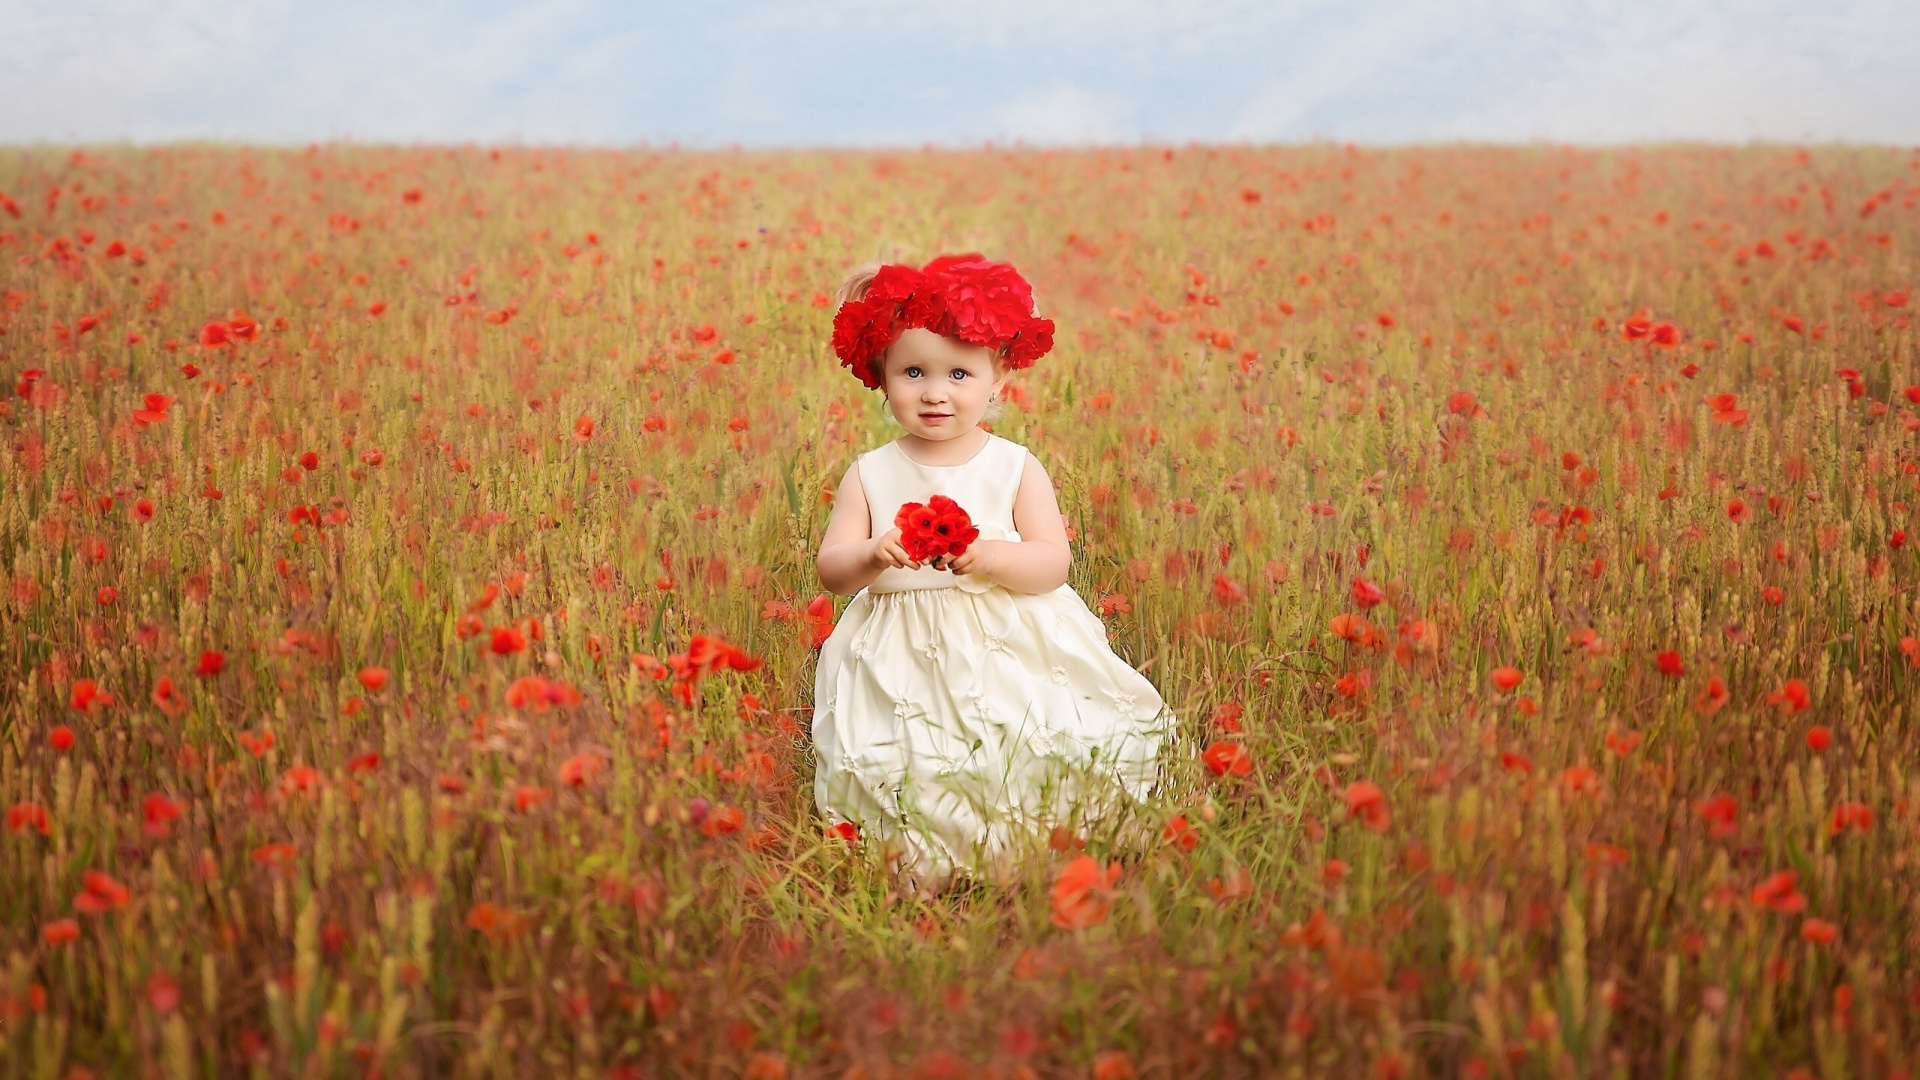 Wallpaper Cute Baby Girl In Poppy Field - Cute Baby Girls Hd Wallpaper For Laptop , HD Wallpaper & Backgrounds